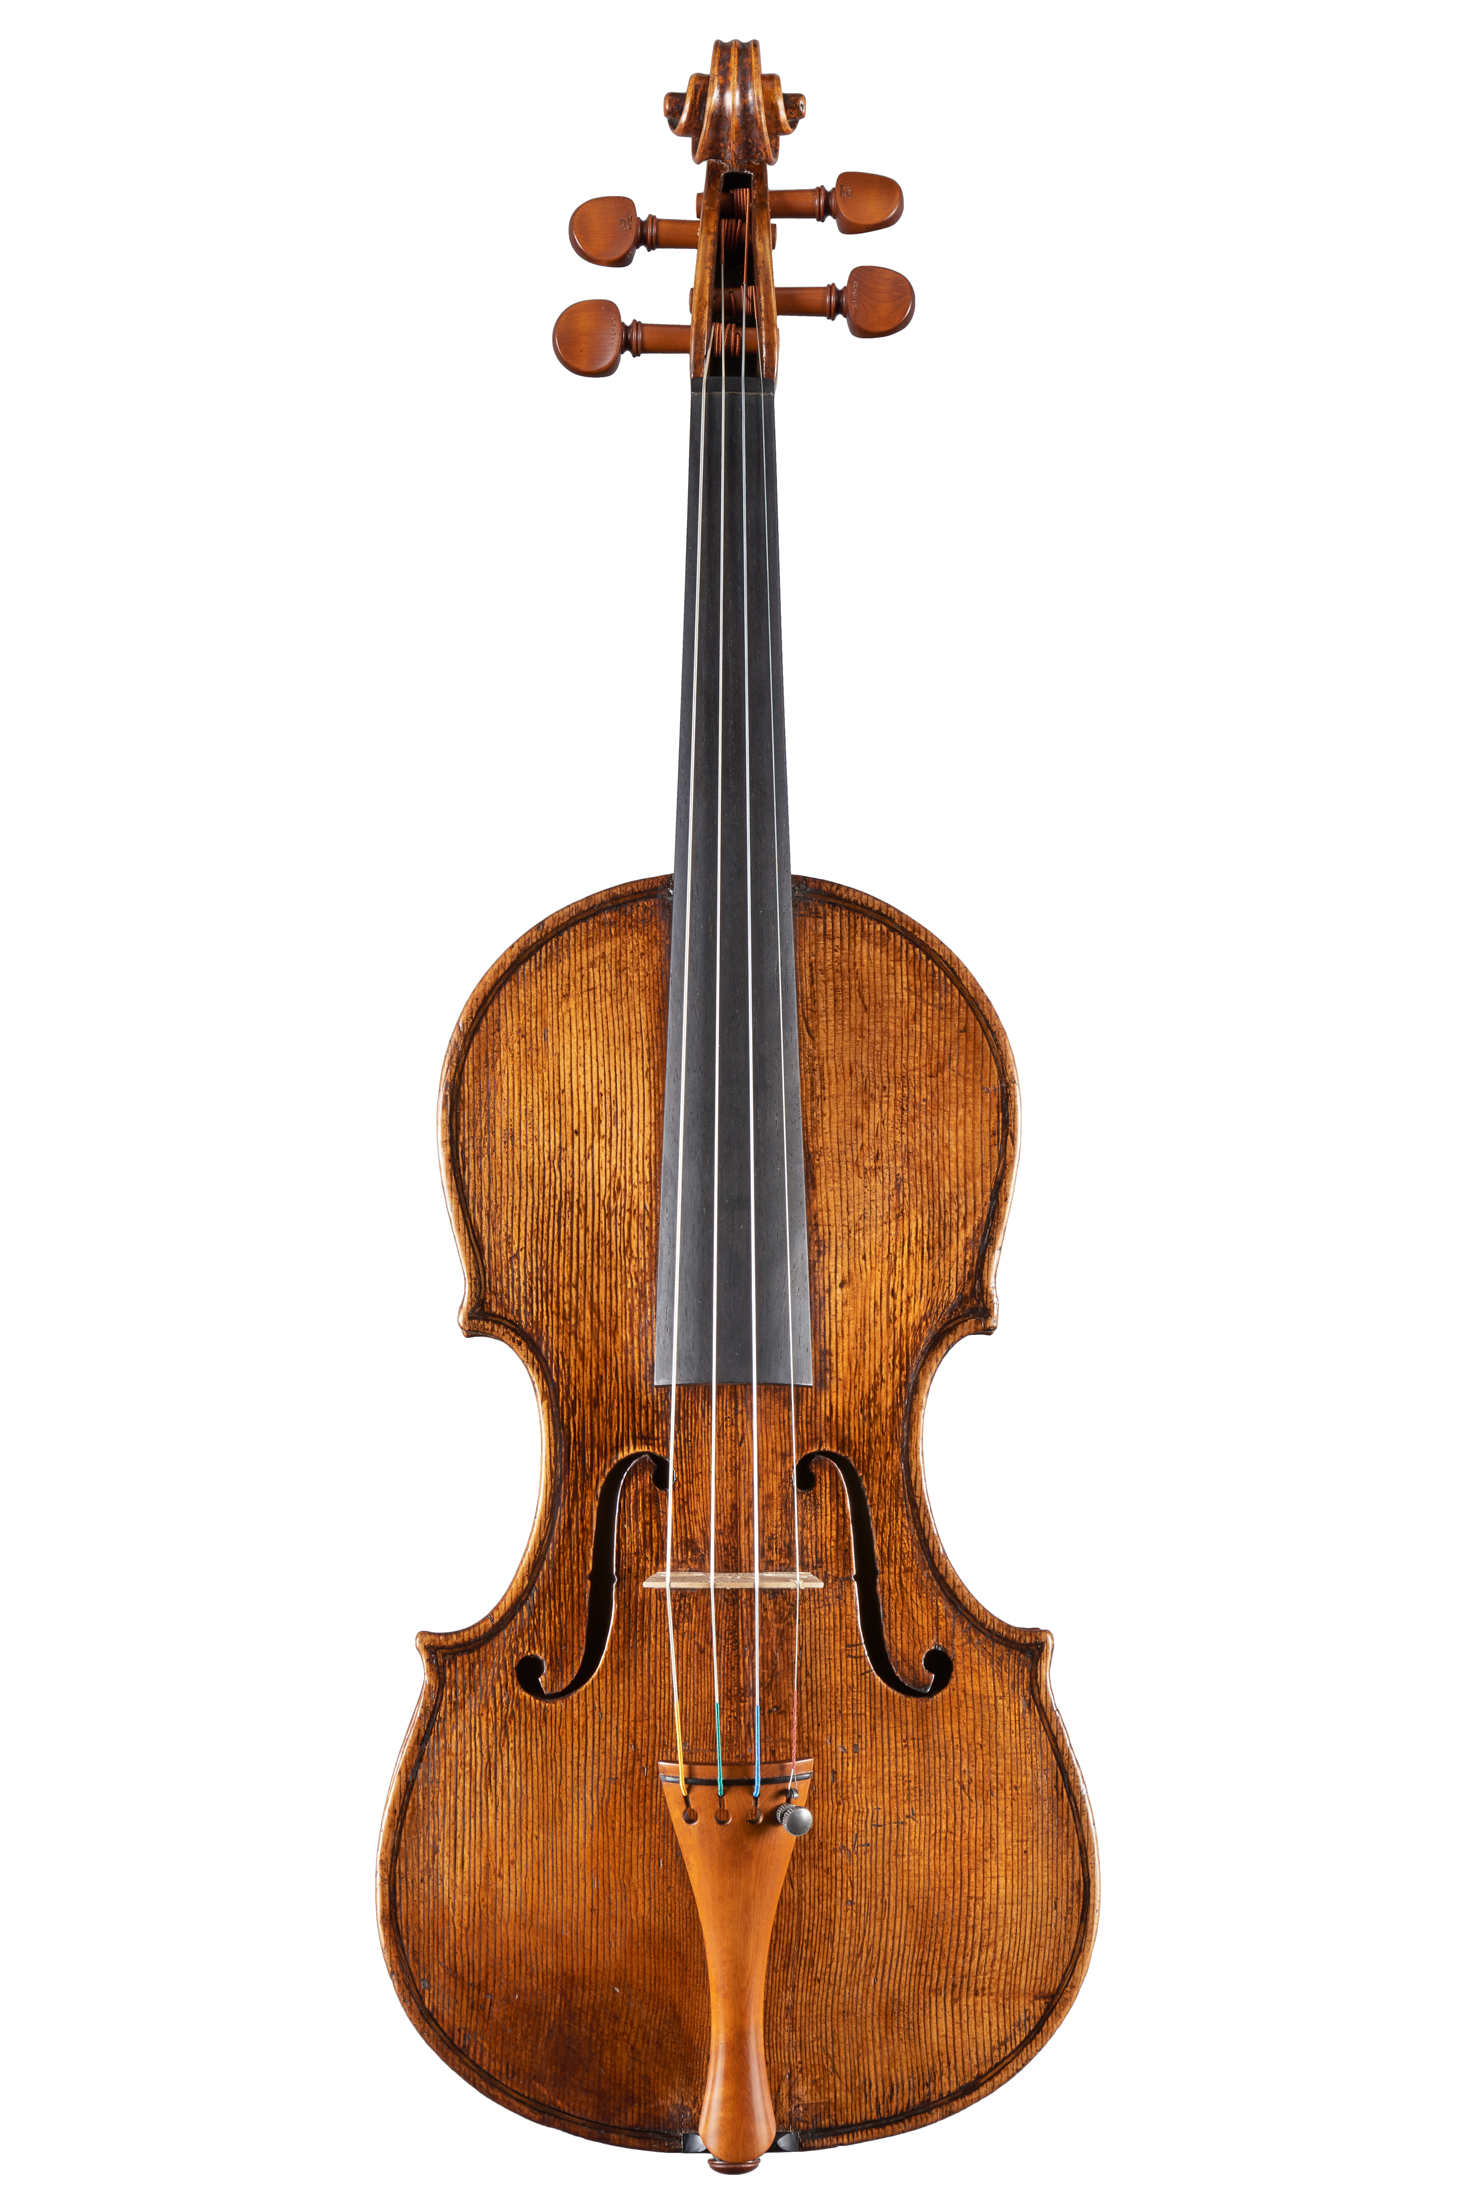 Violin, central Italy, C.F. Landolfi head, c. 1770